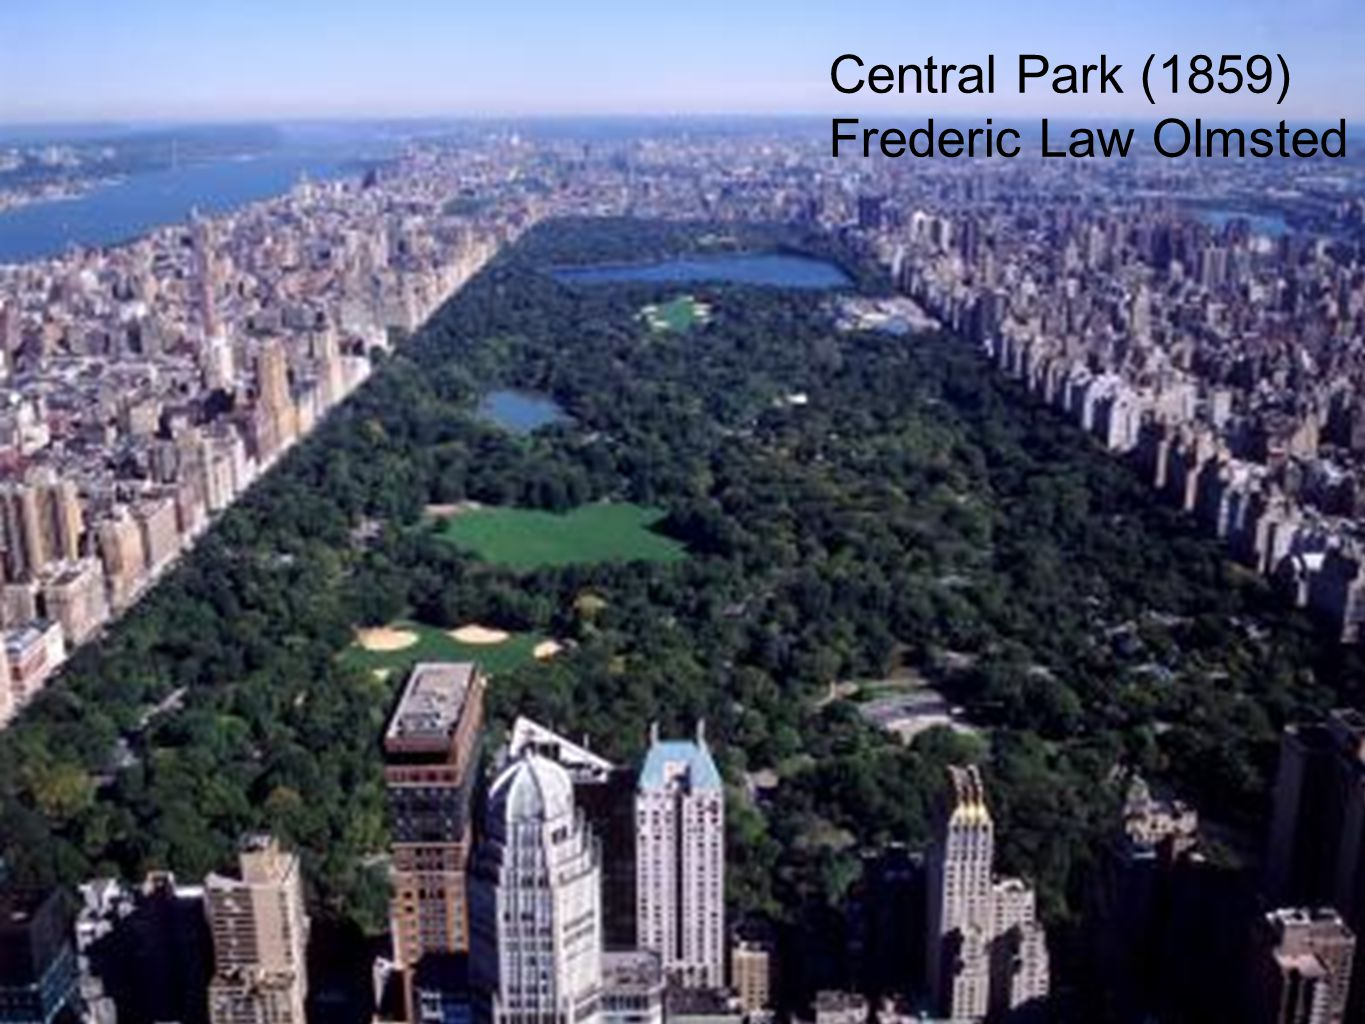 Central Park (1859) Frederic Law Olmsted